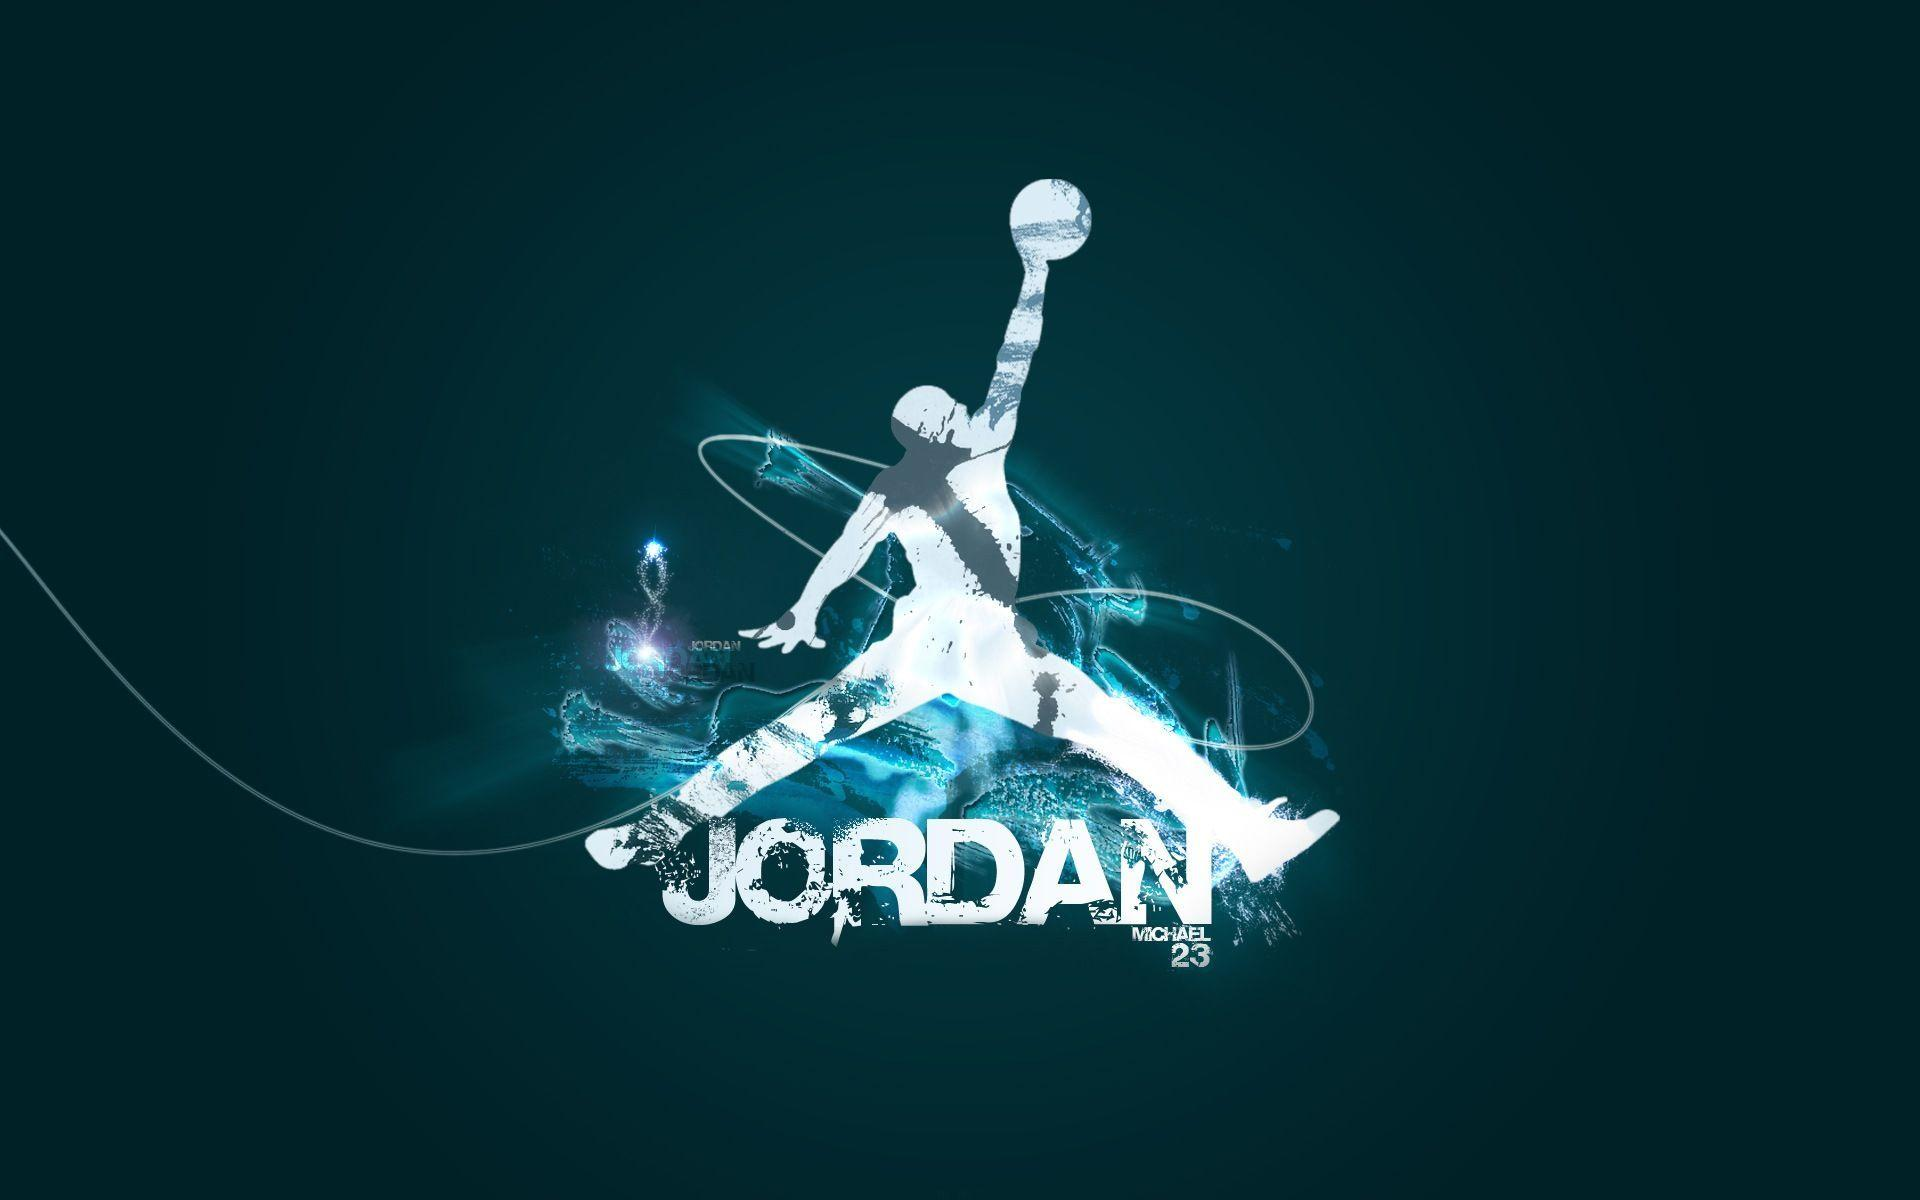 Air Jordan desktop wallpaper